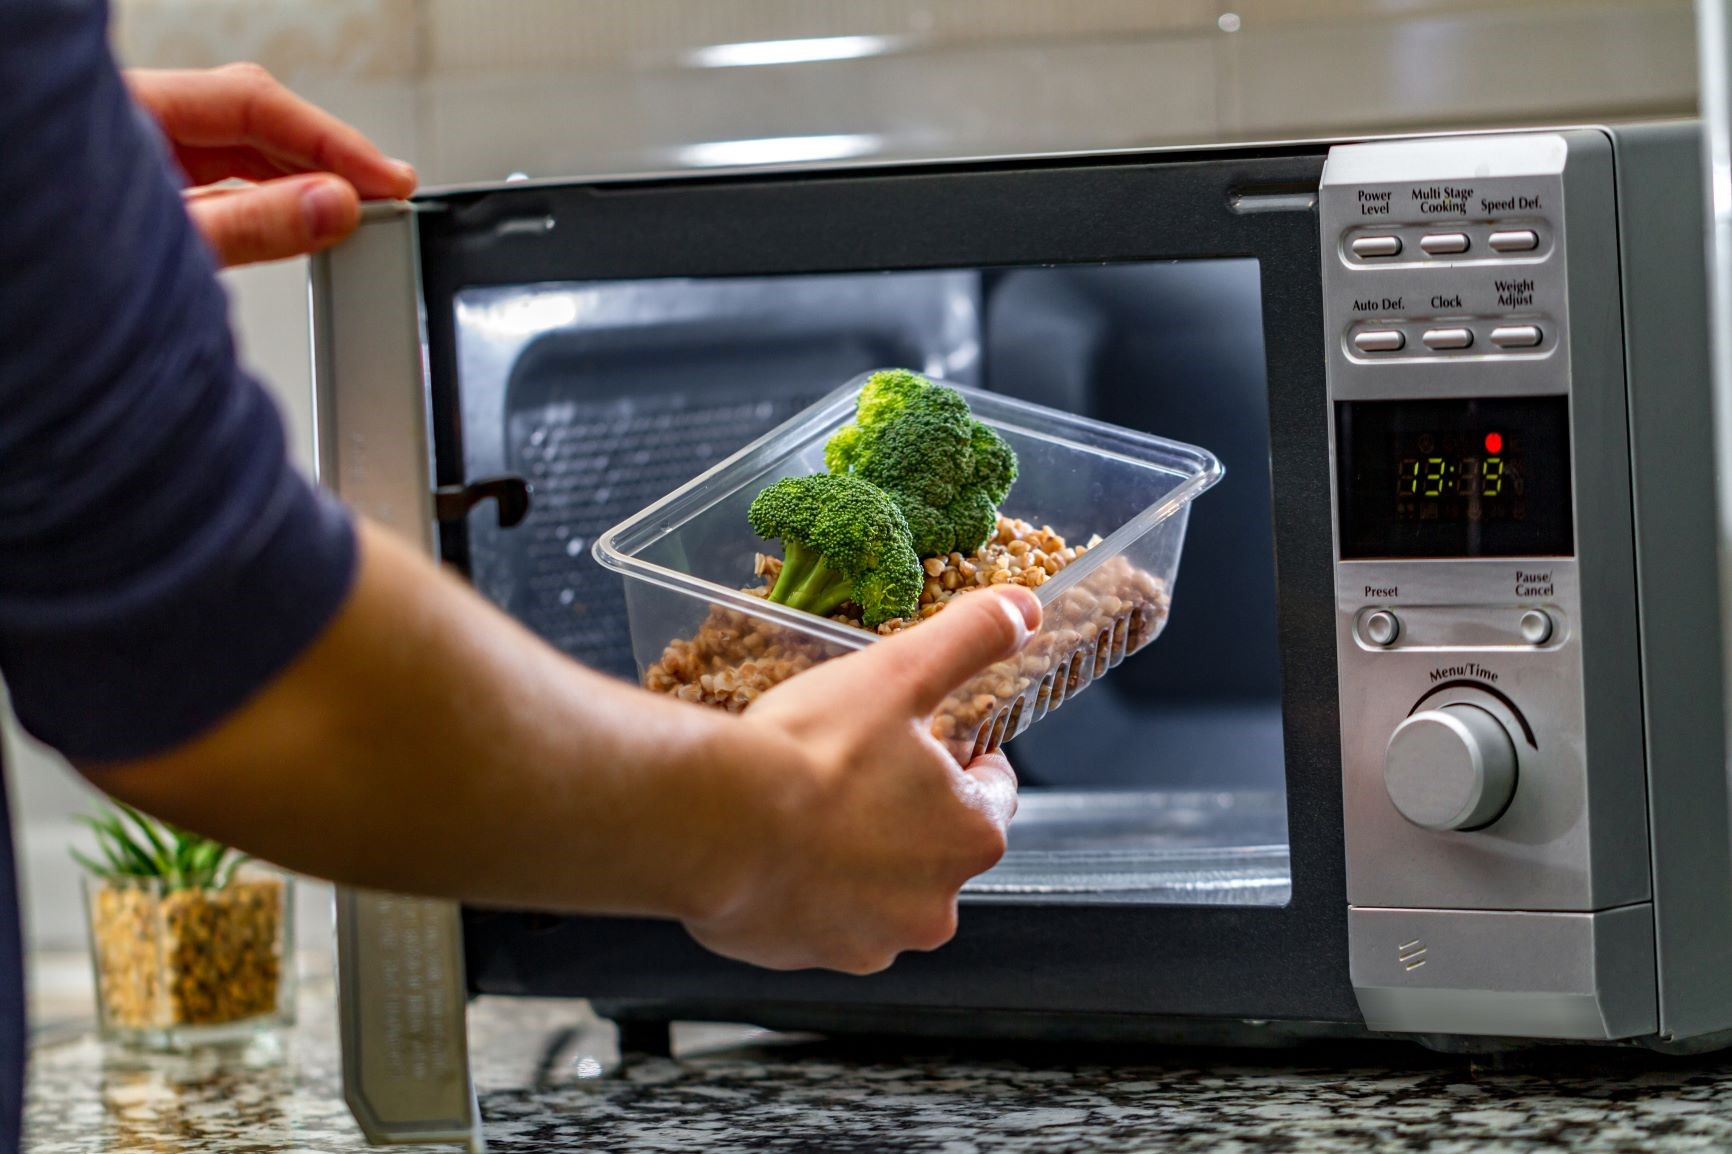 <h1>Why every home needs a microwave</h1>